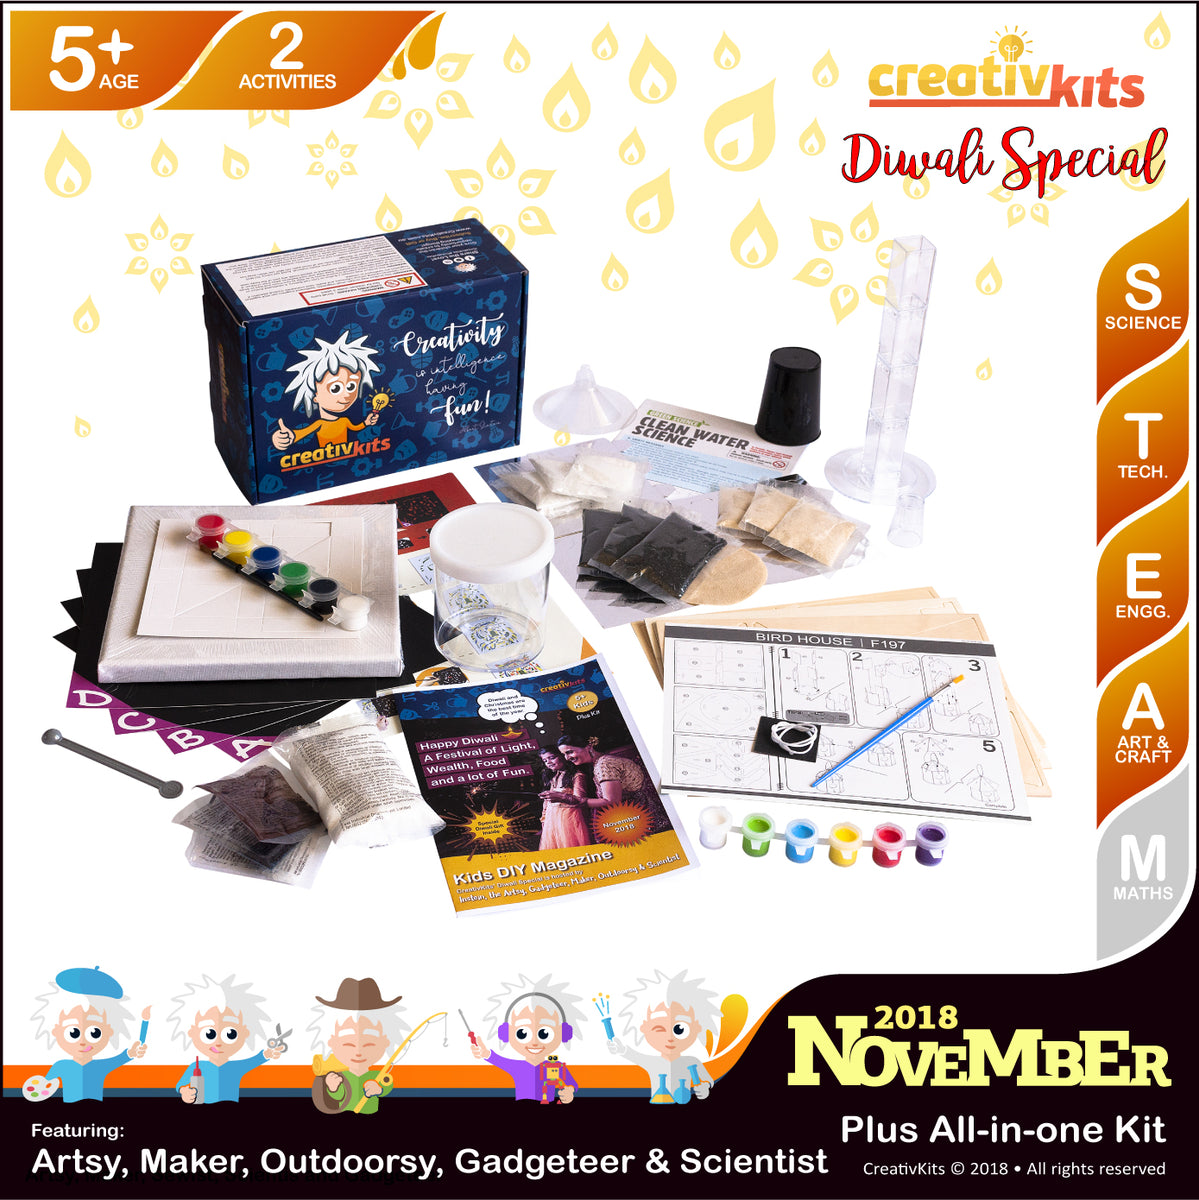 November Plus Kit • Age 5 plus • Canvas Pop Art, Water Filtration, Crystal Growing and 3D Bird House